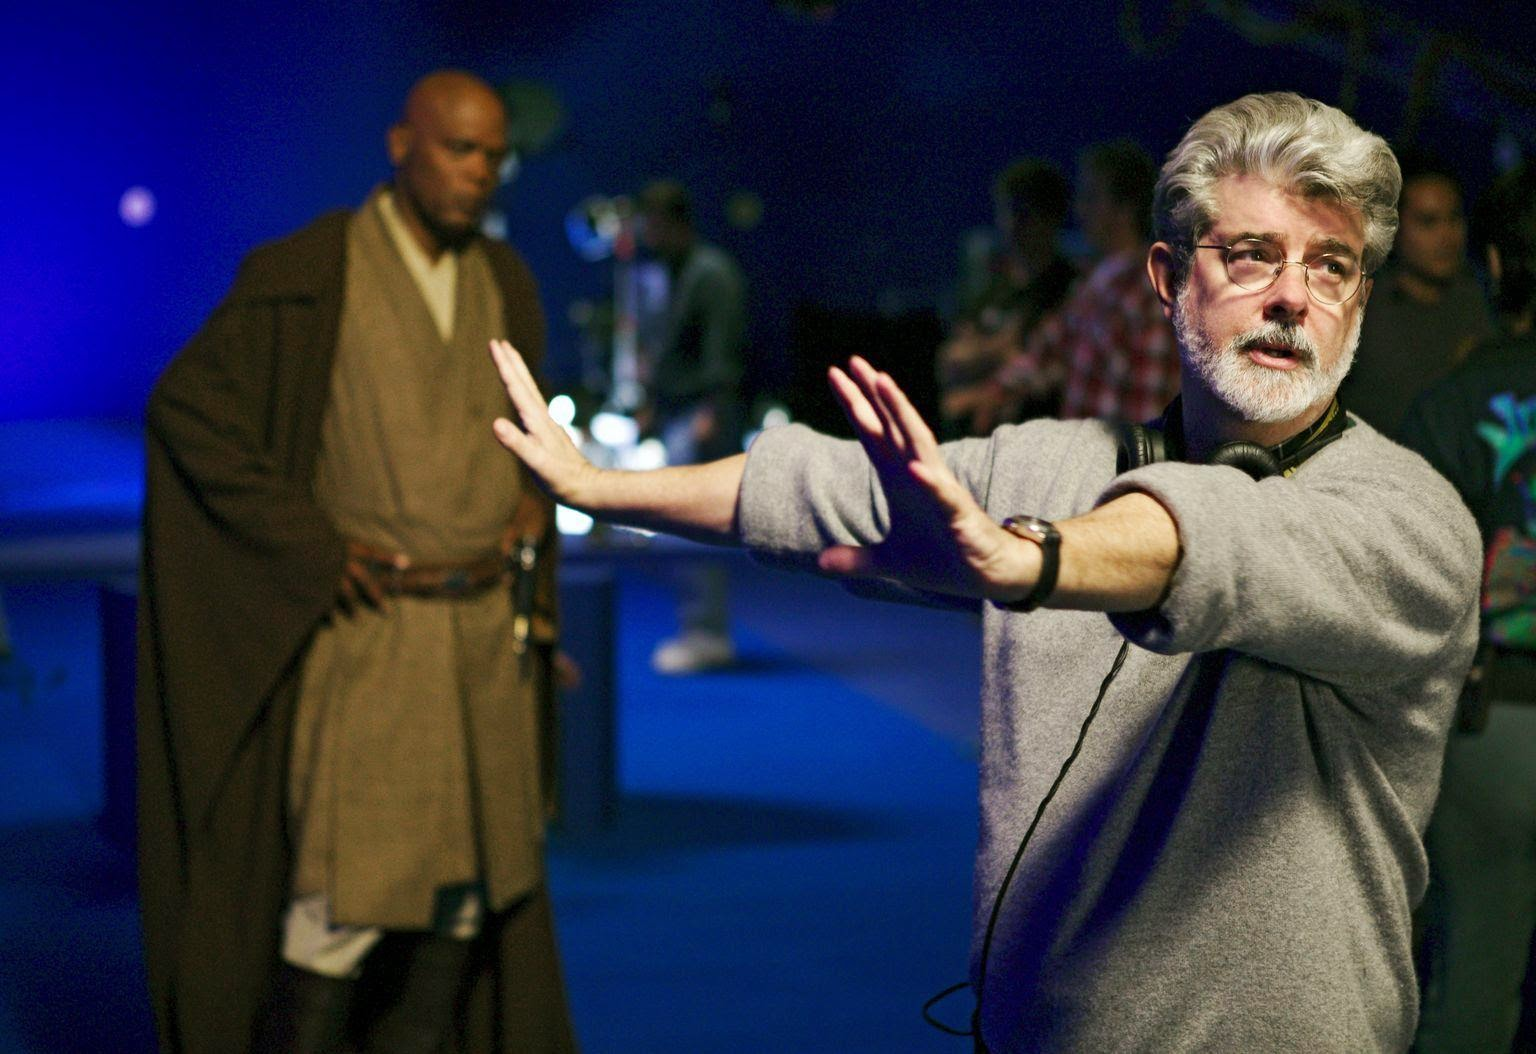 george lucas and movies no future essay Beyond its status as the first star wars movie the prequels signal a troubling lack of interest from writer-director george lucas in and when the future.